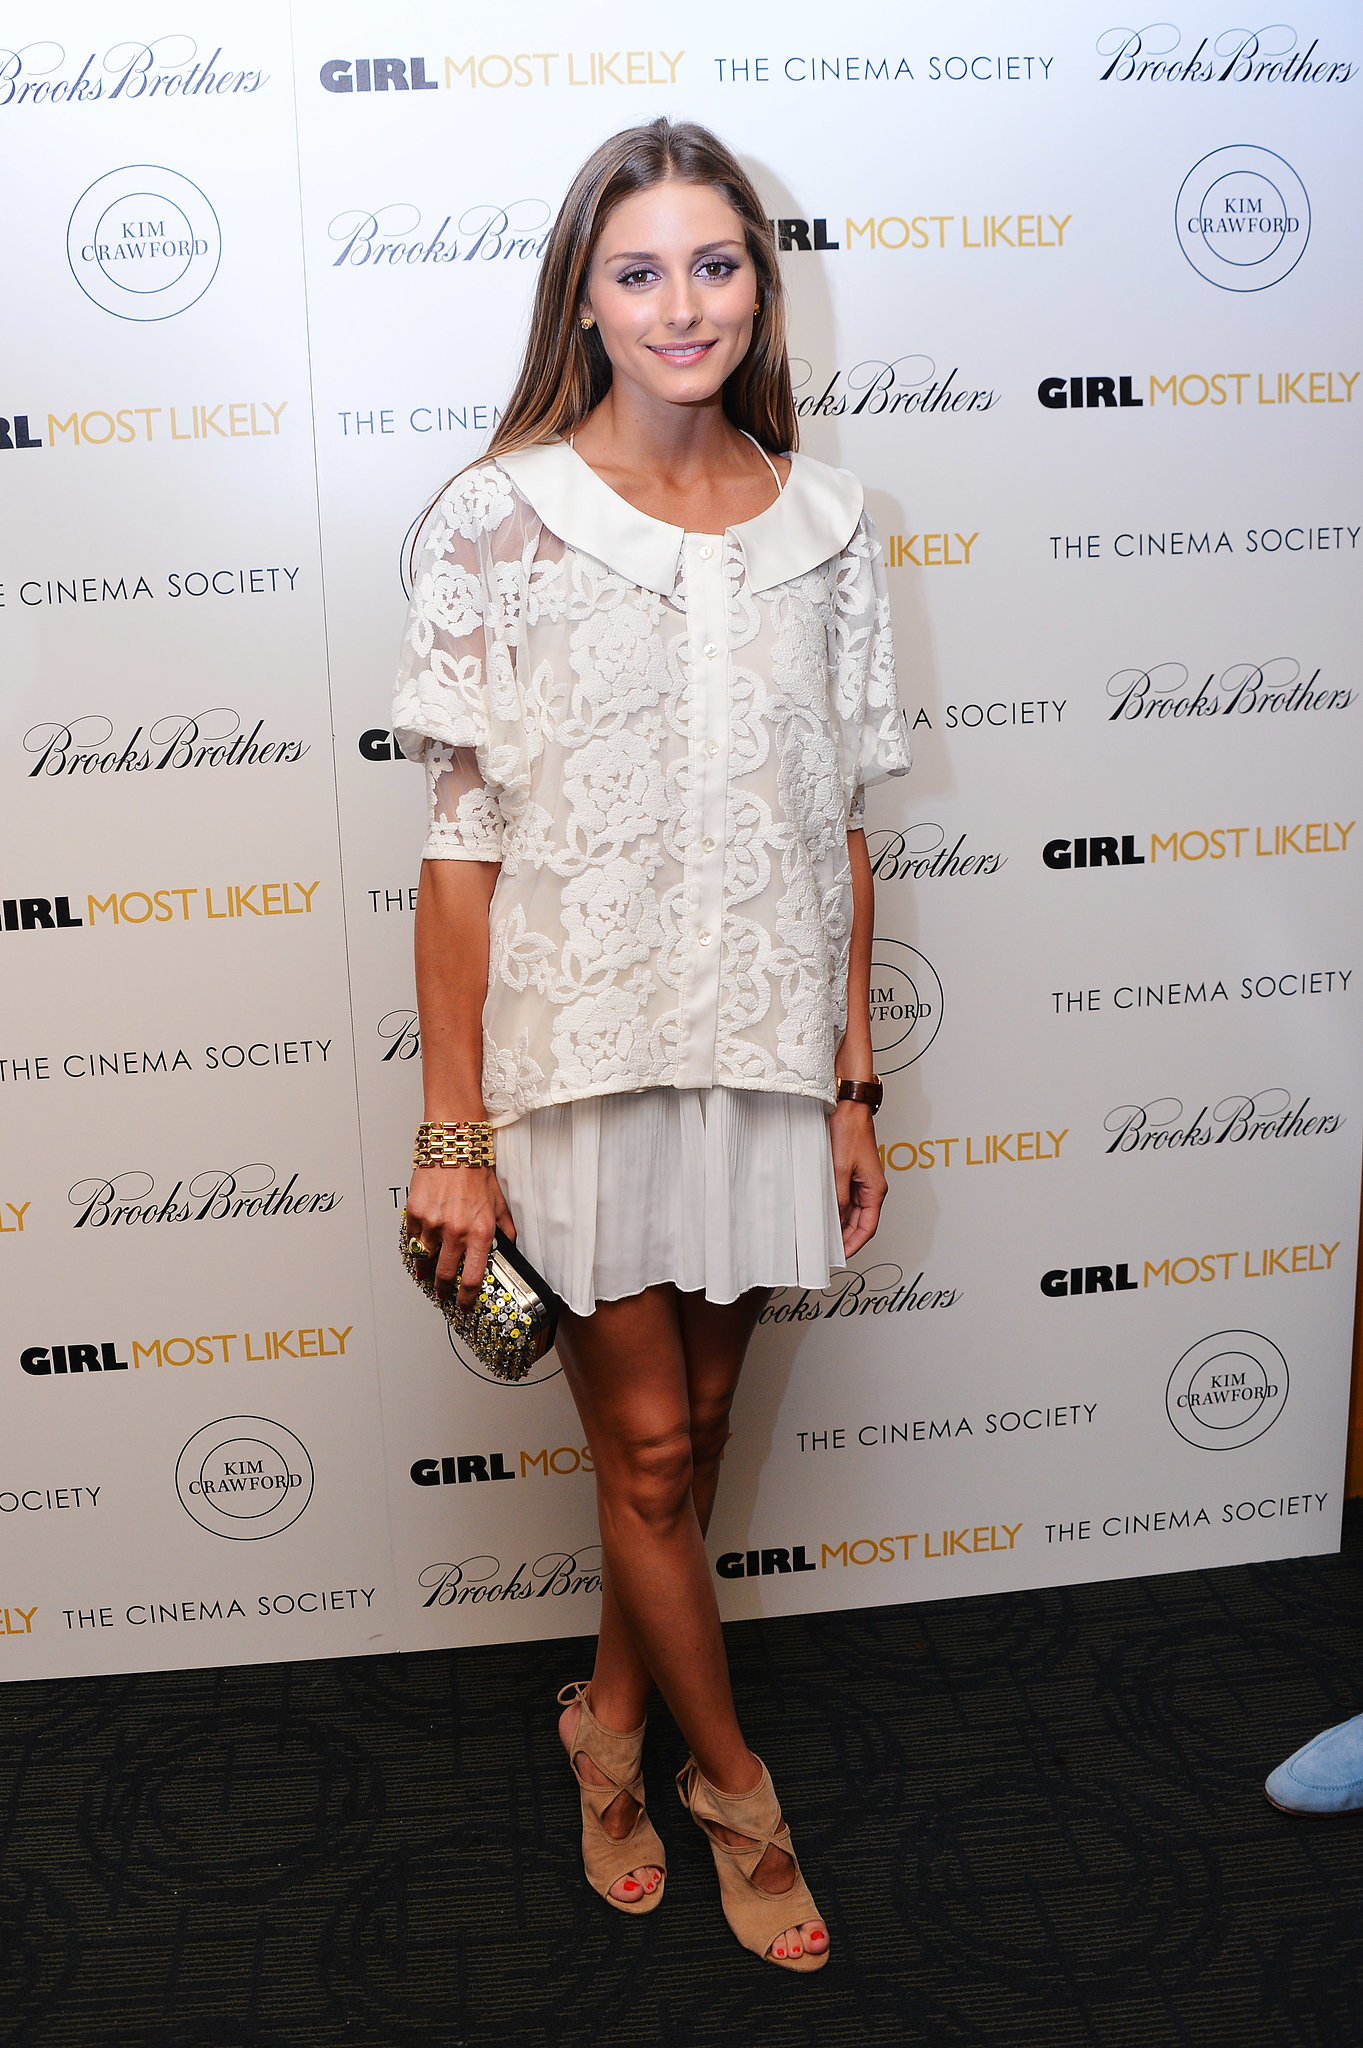 Olivia nailed Summer chic in an all-white look, complete with sexy lace-up Aquazzura heels.